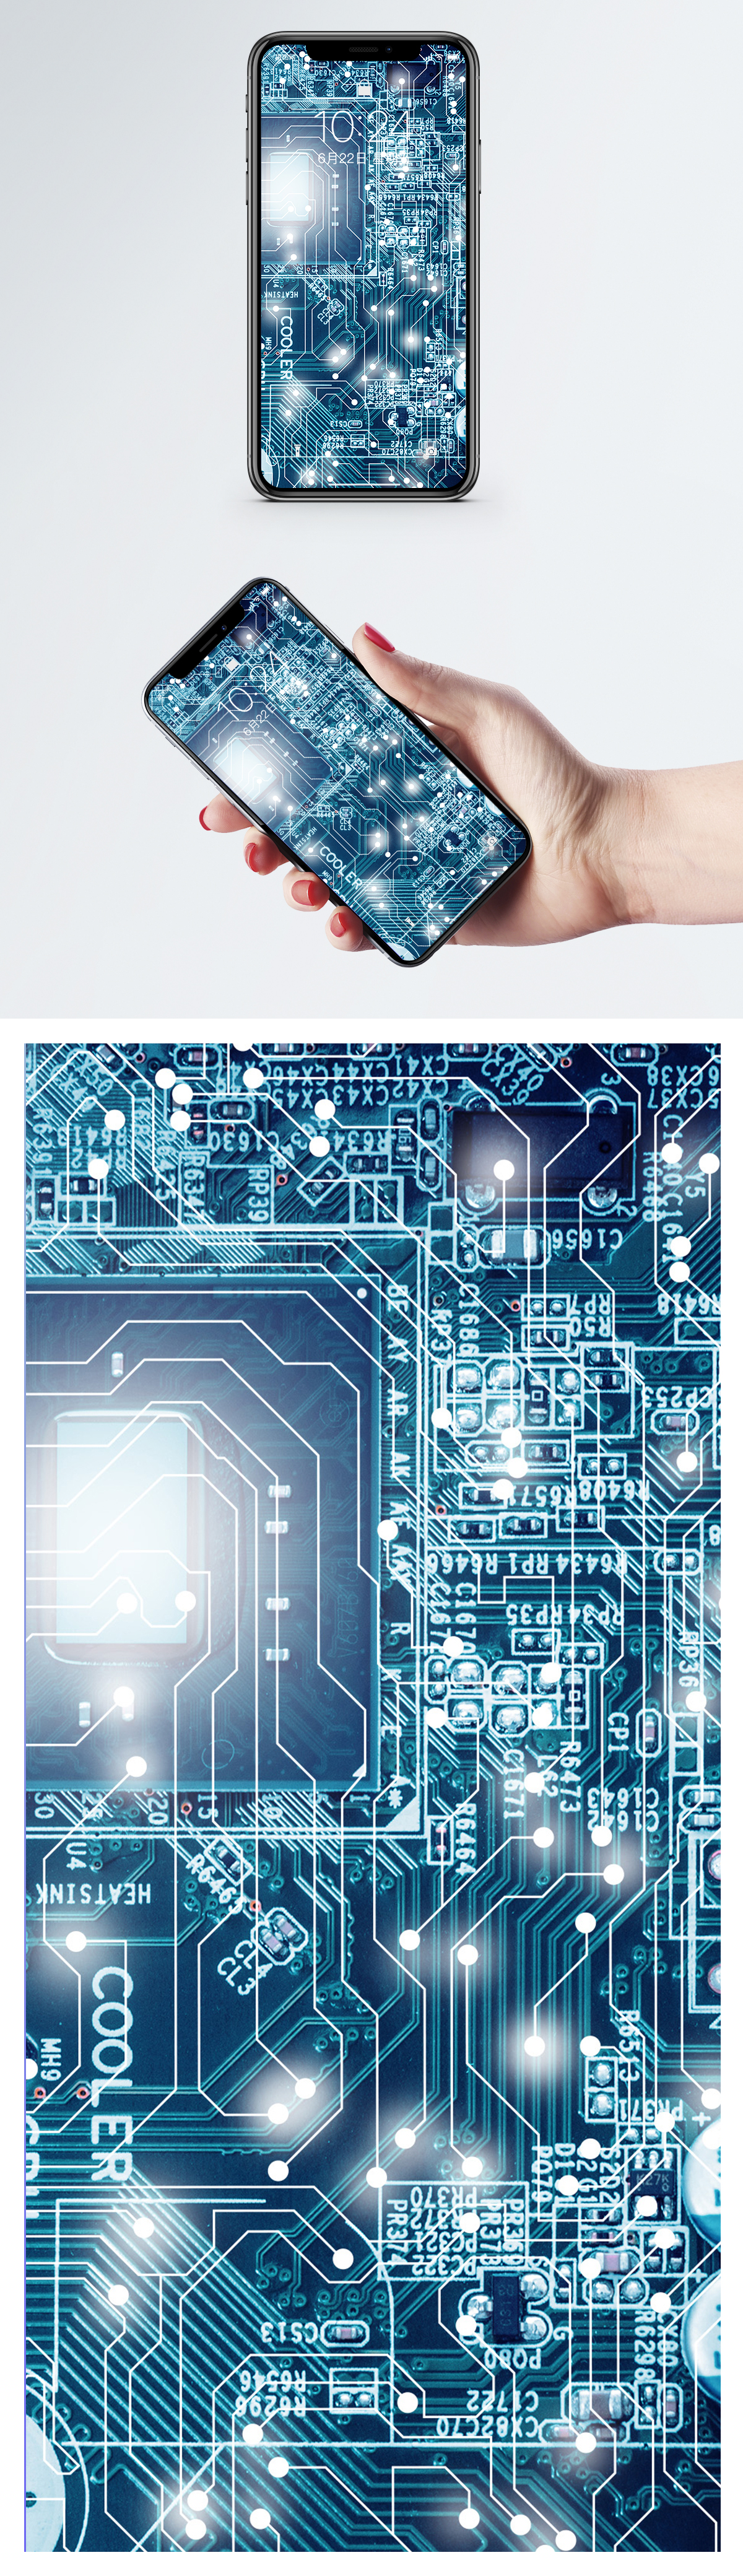 Circuit Board Mobile Phone Wallpaper Backgrounds Images Free Download 400514197 Lovepik Com